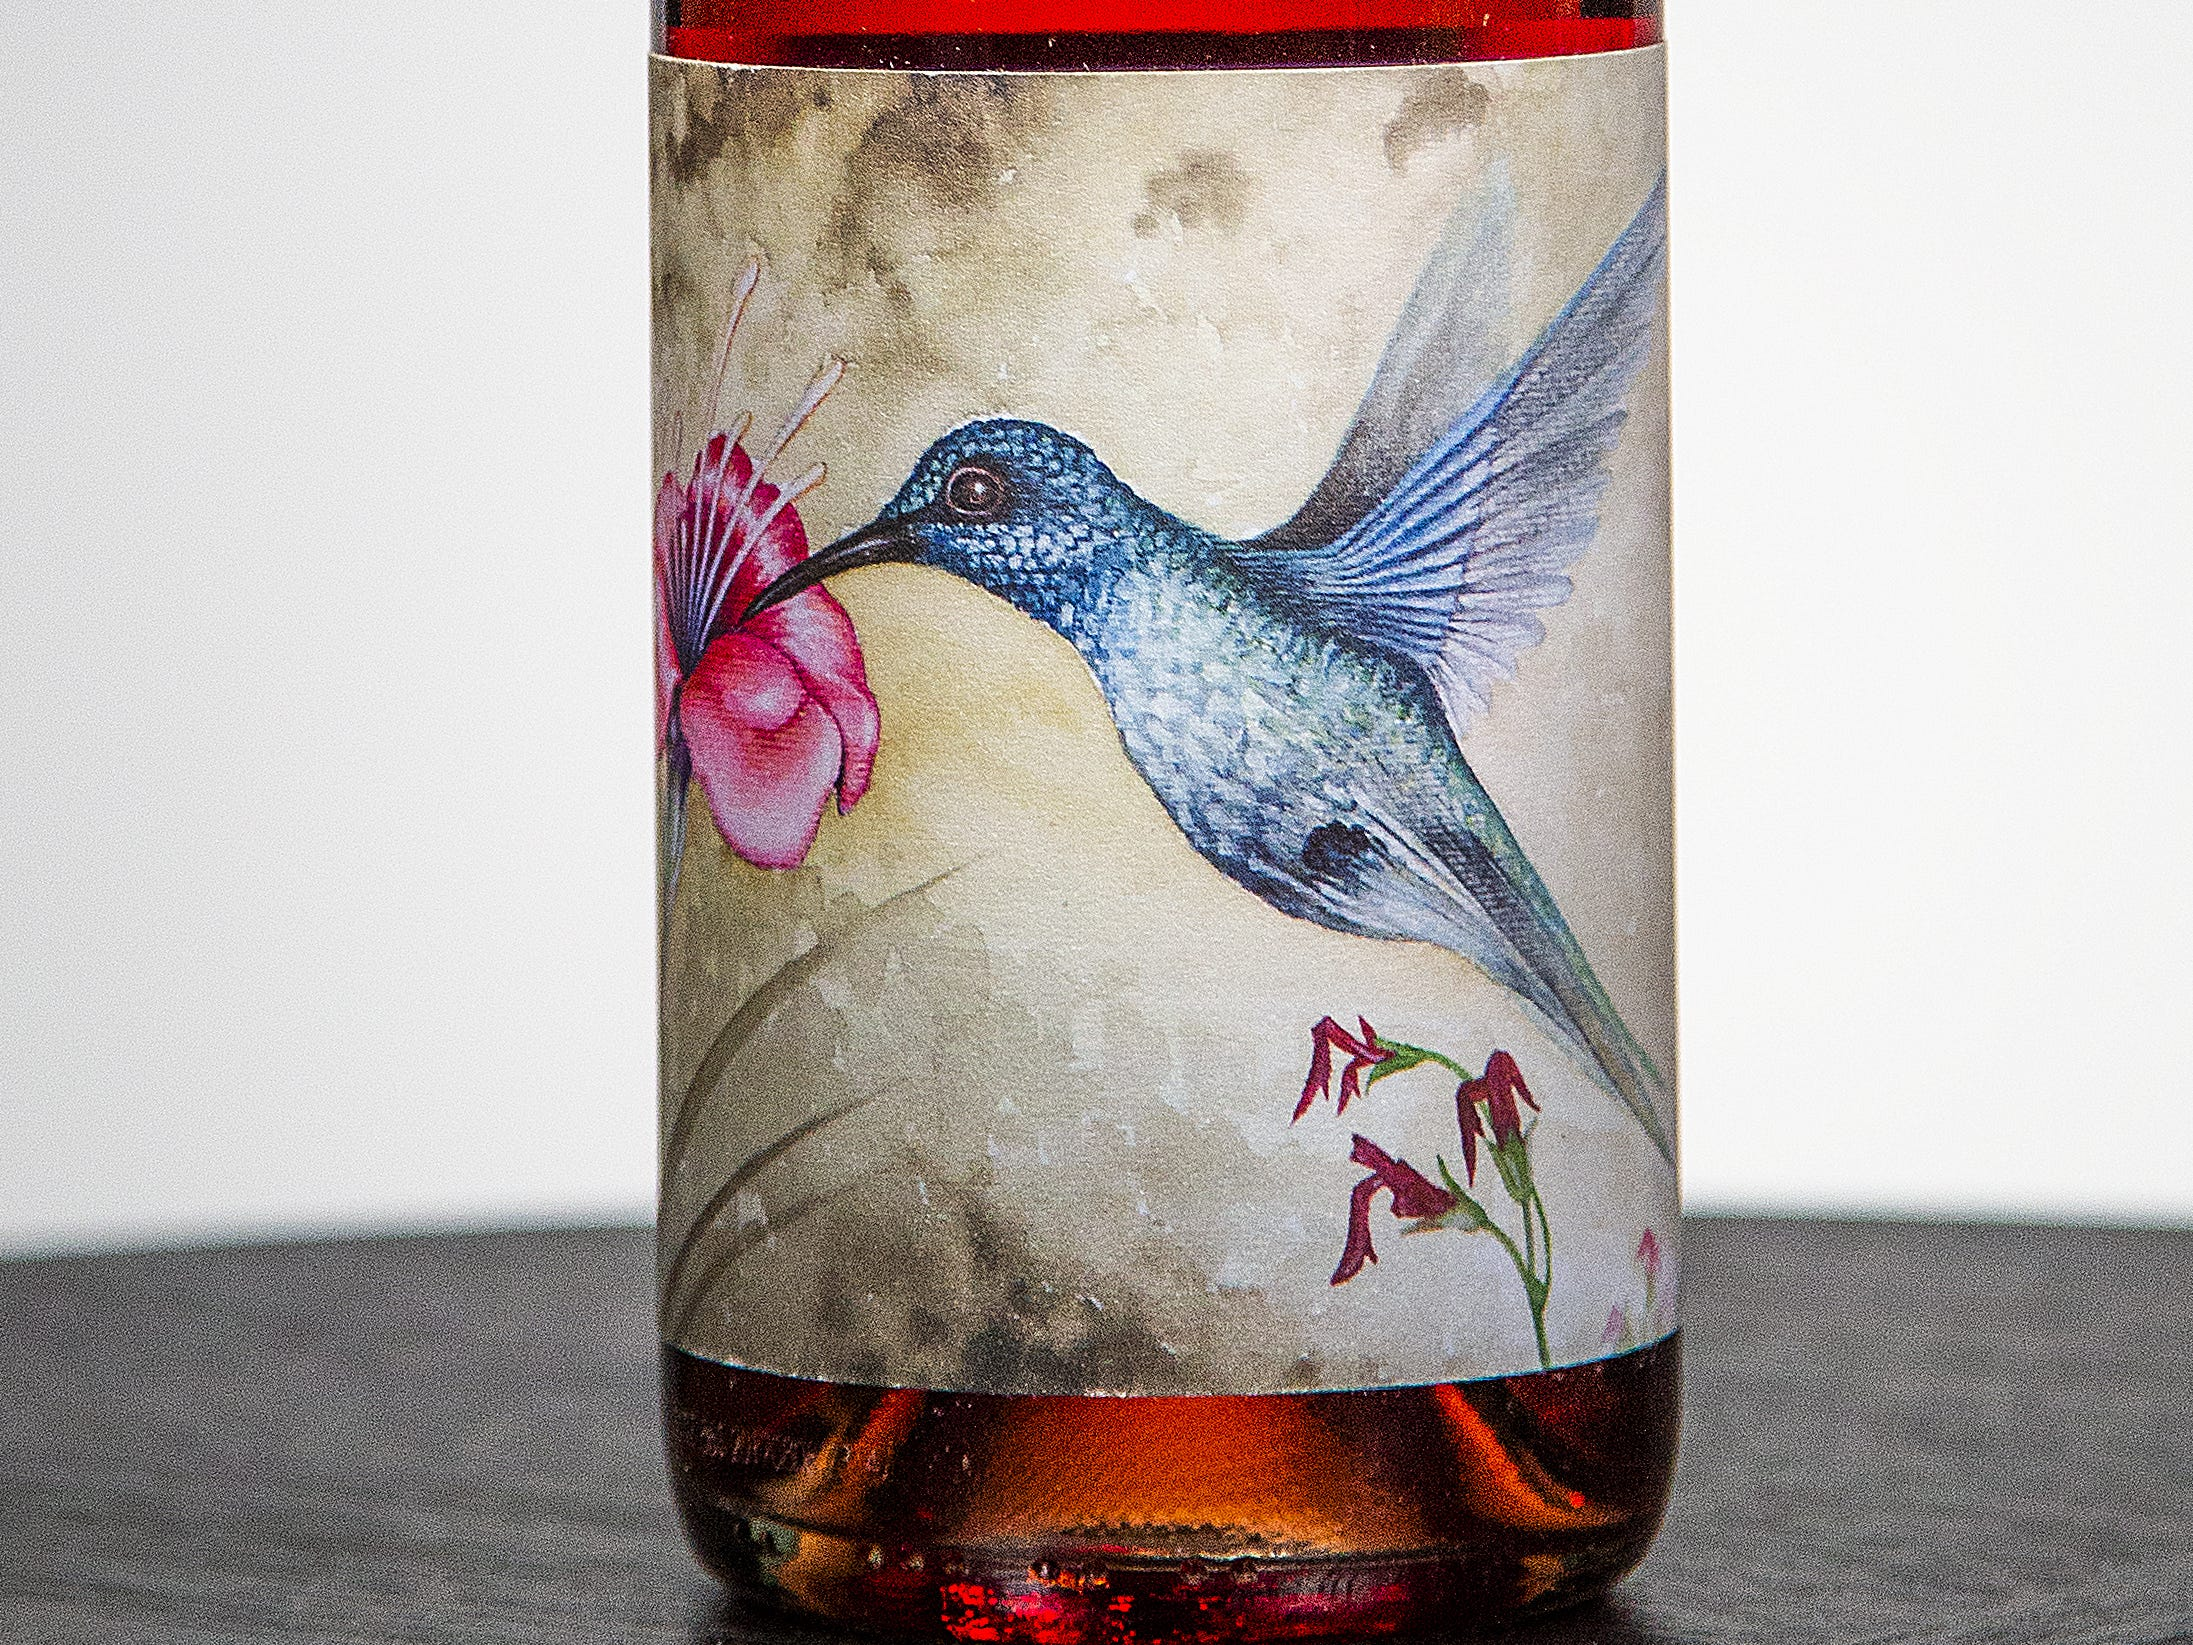 Best Rosé: Burning Tree Cellars Colibri Rosé 2017. This wine was also named Best Rosé Blend.